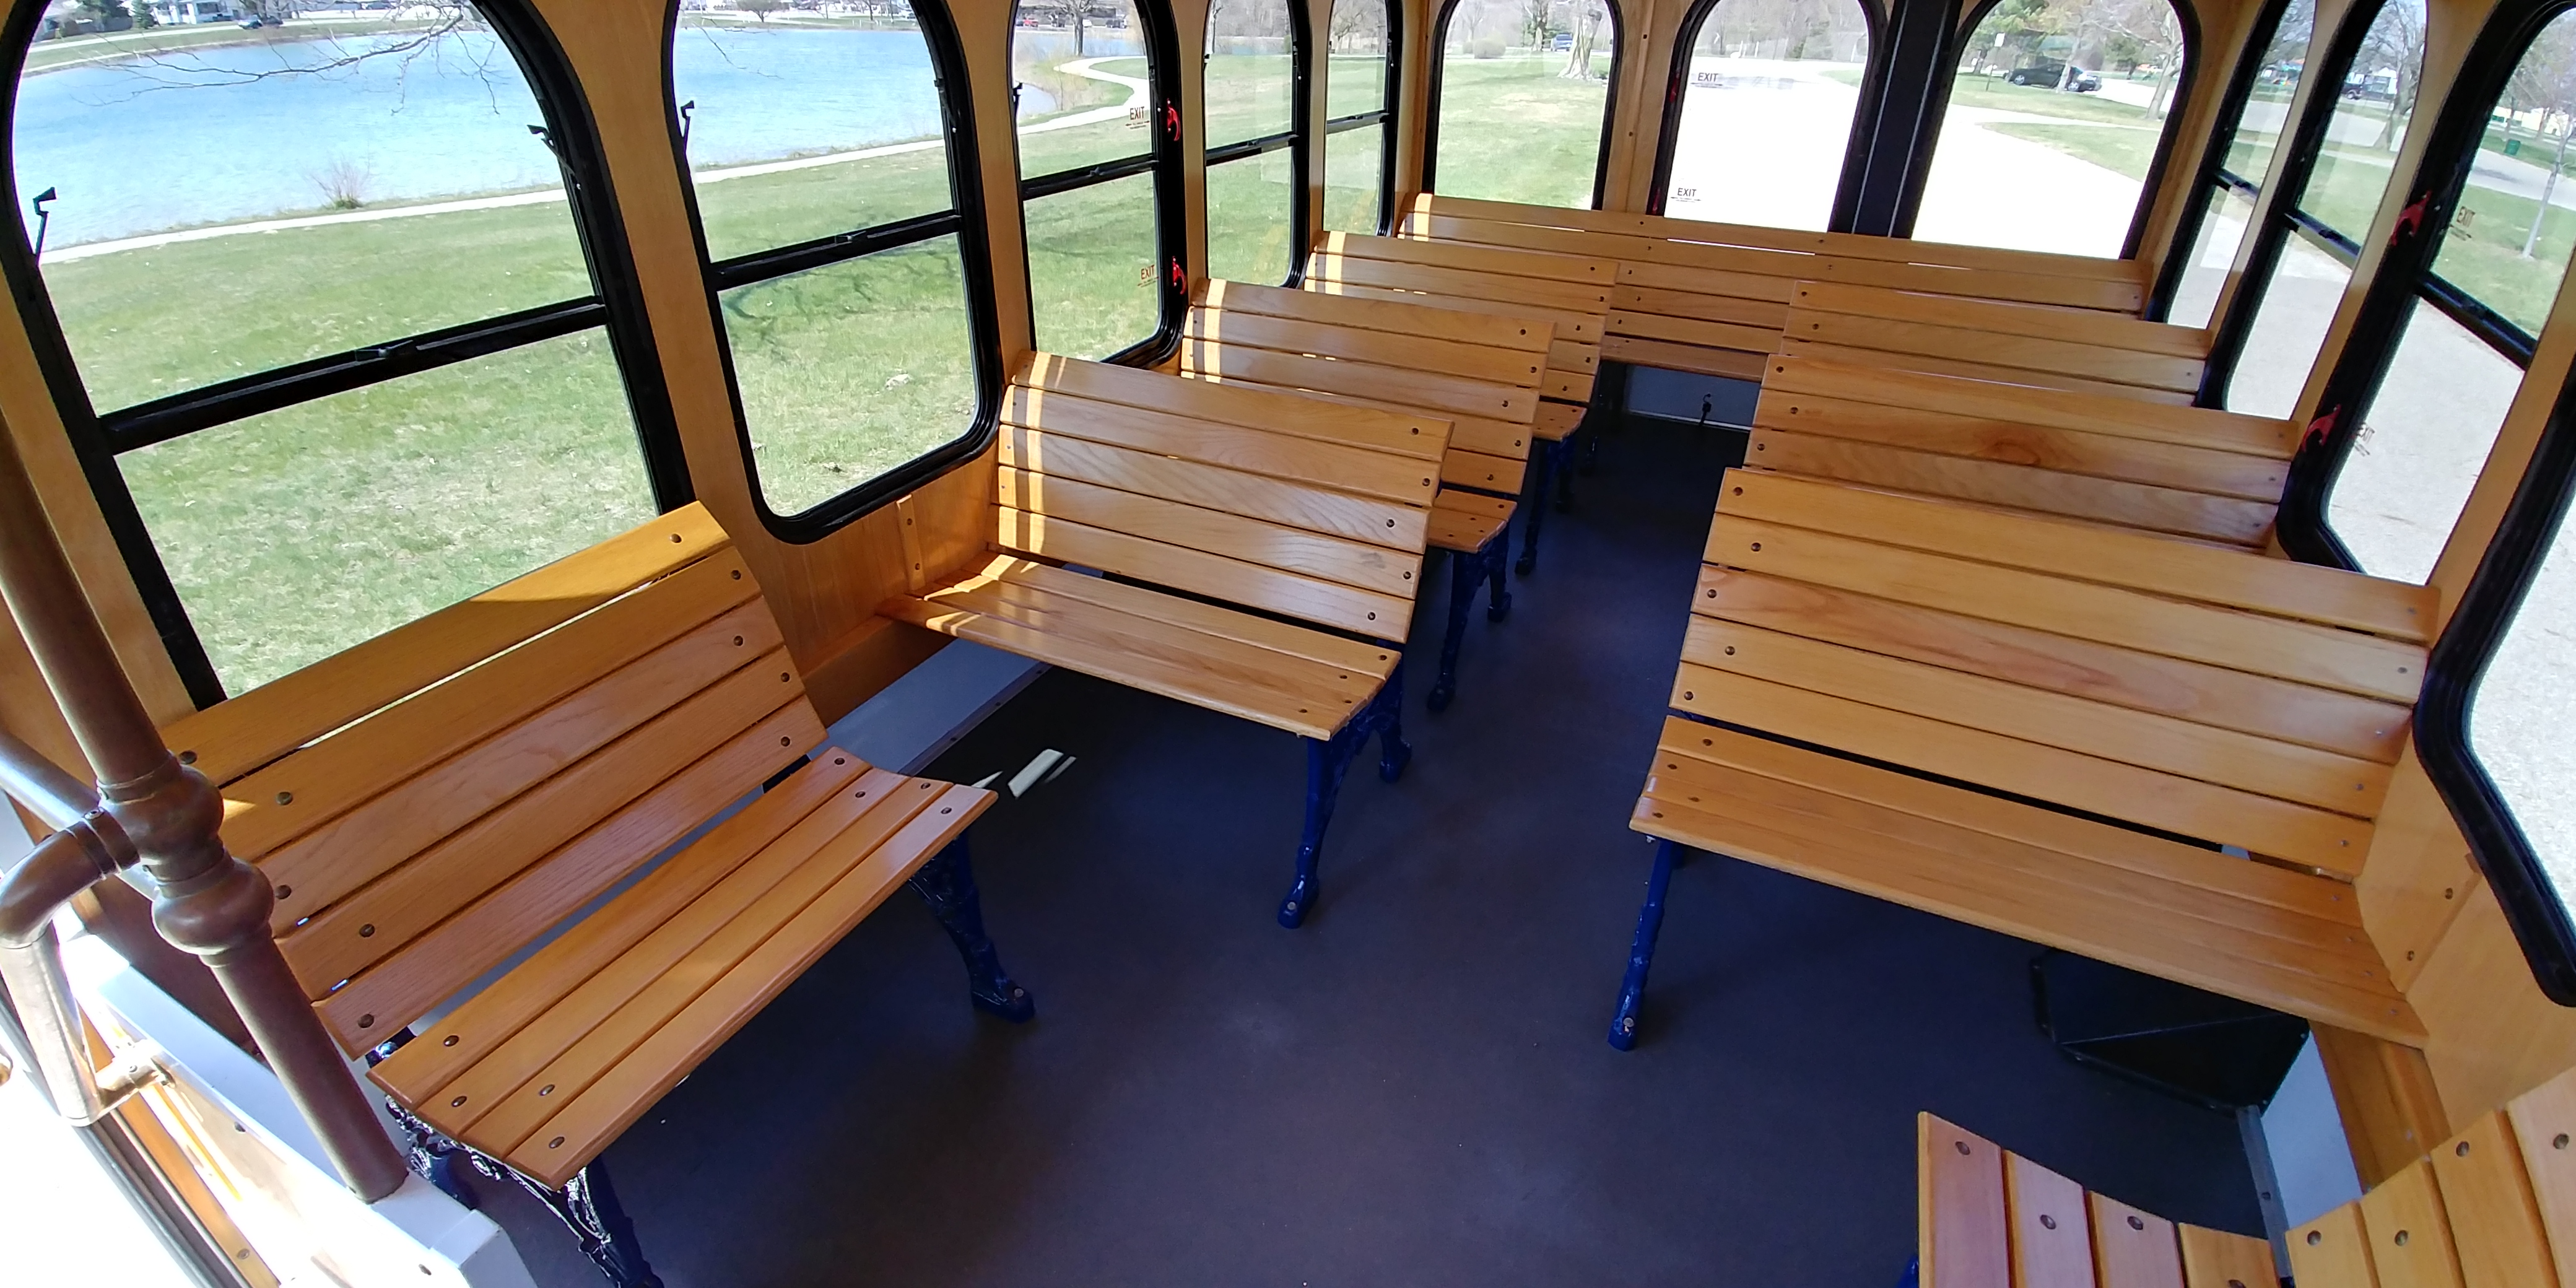 24 Passenger Trolley Interior 3